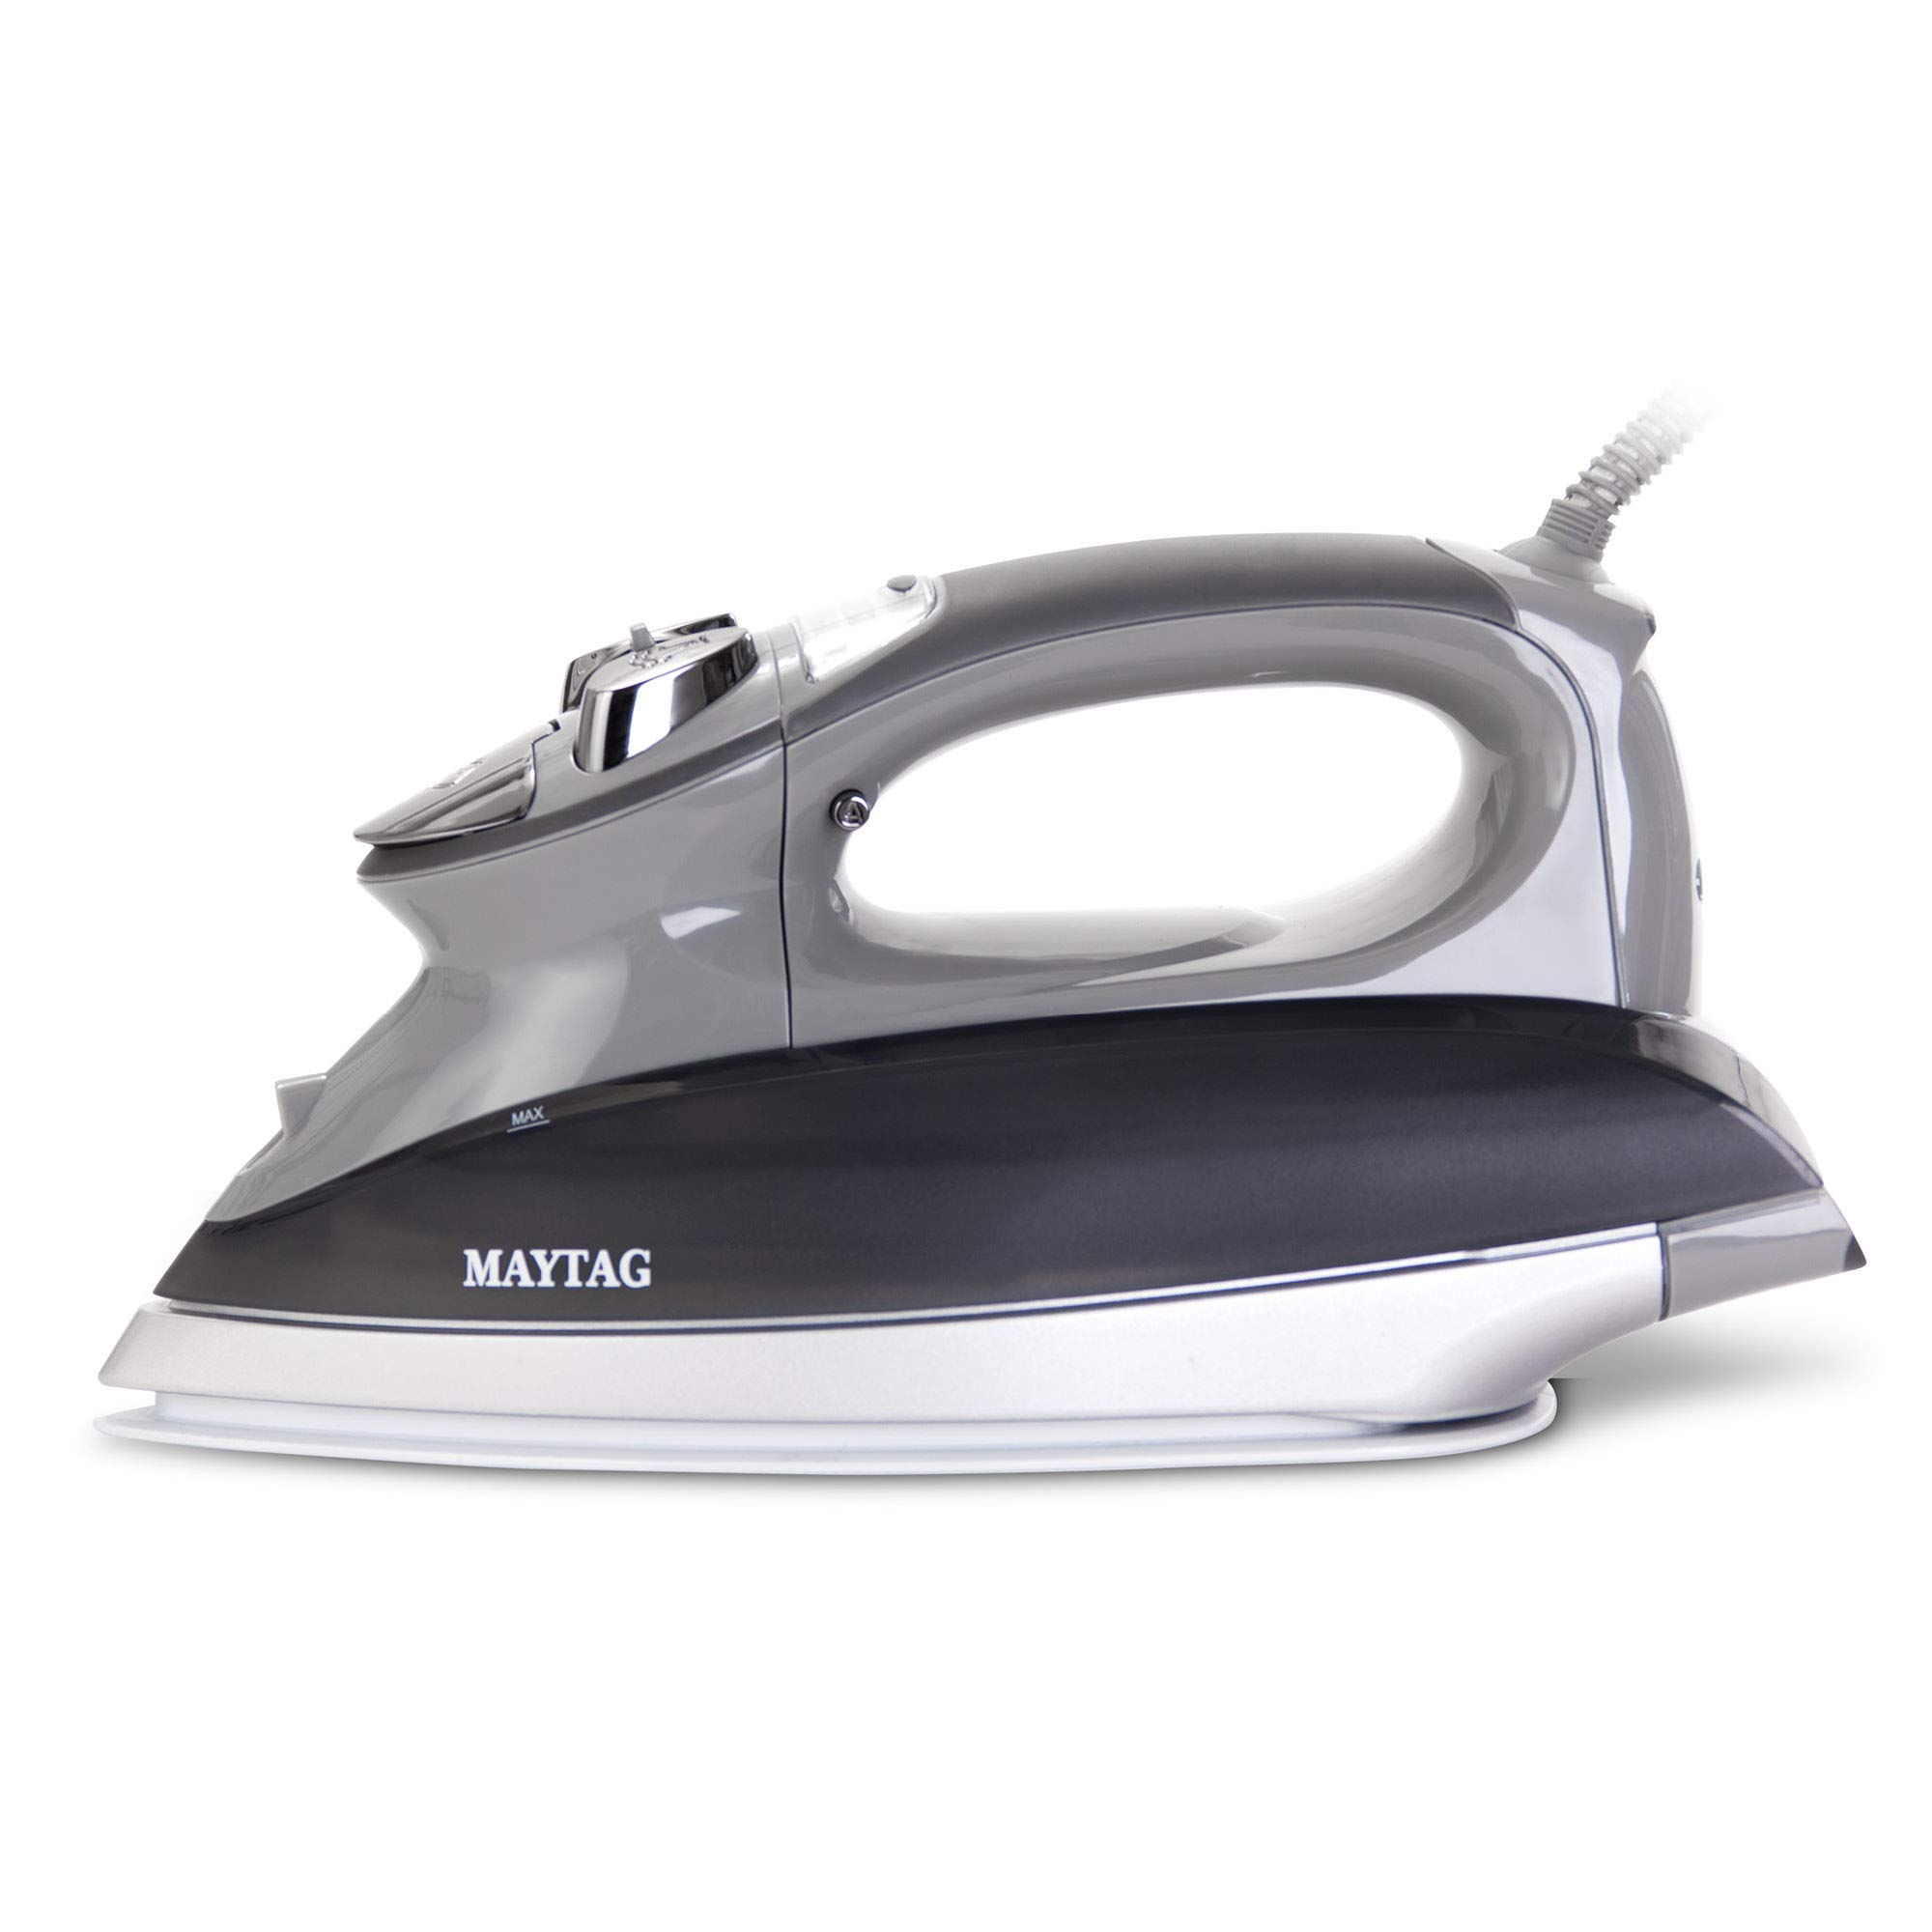 Maytag M1200 Digital Smart Fill Steam Iron & Vertical Steamer with Pearl Ceramic Sole Plate, Self Cleaning Function + Thermostat Dial